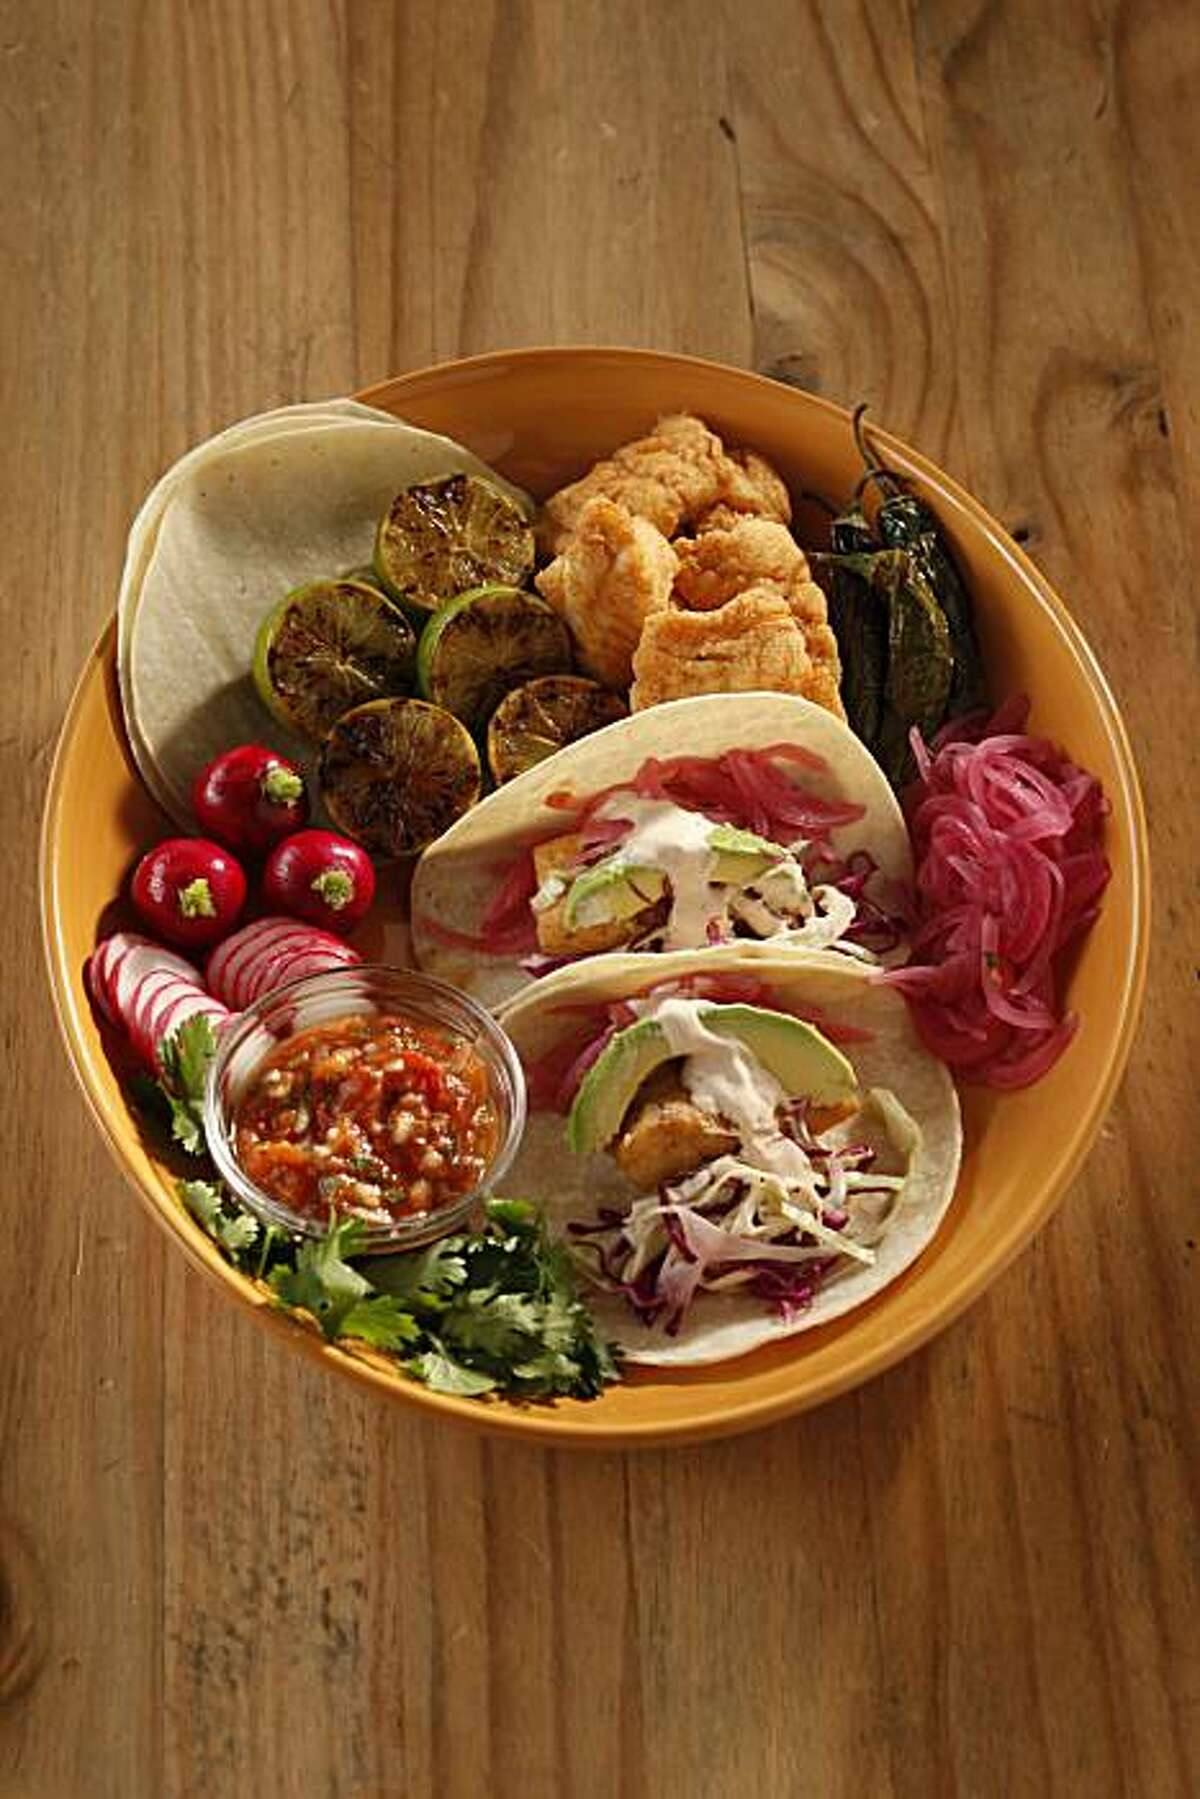 Dish Tacos in San Francisco, Calif., on July 14, 2010. Food styled by Natalie Knight.